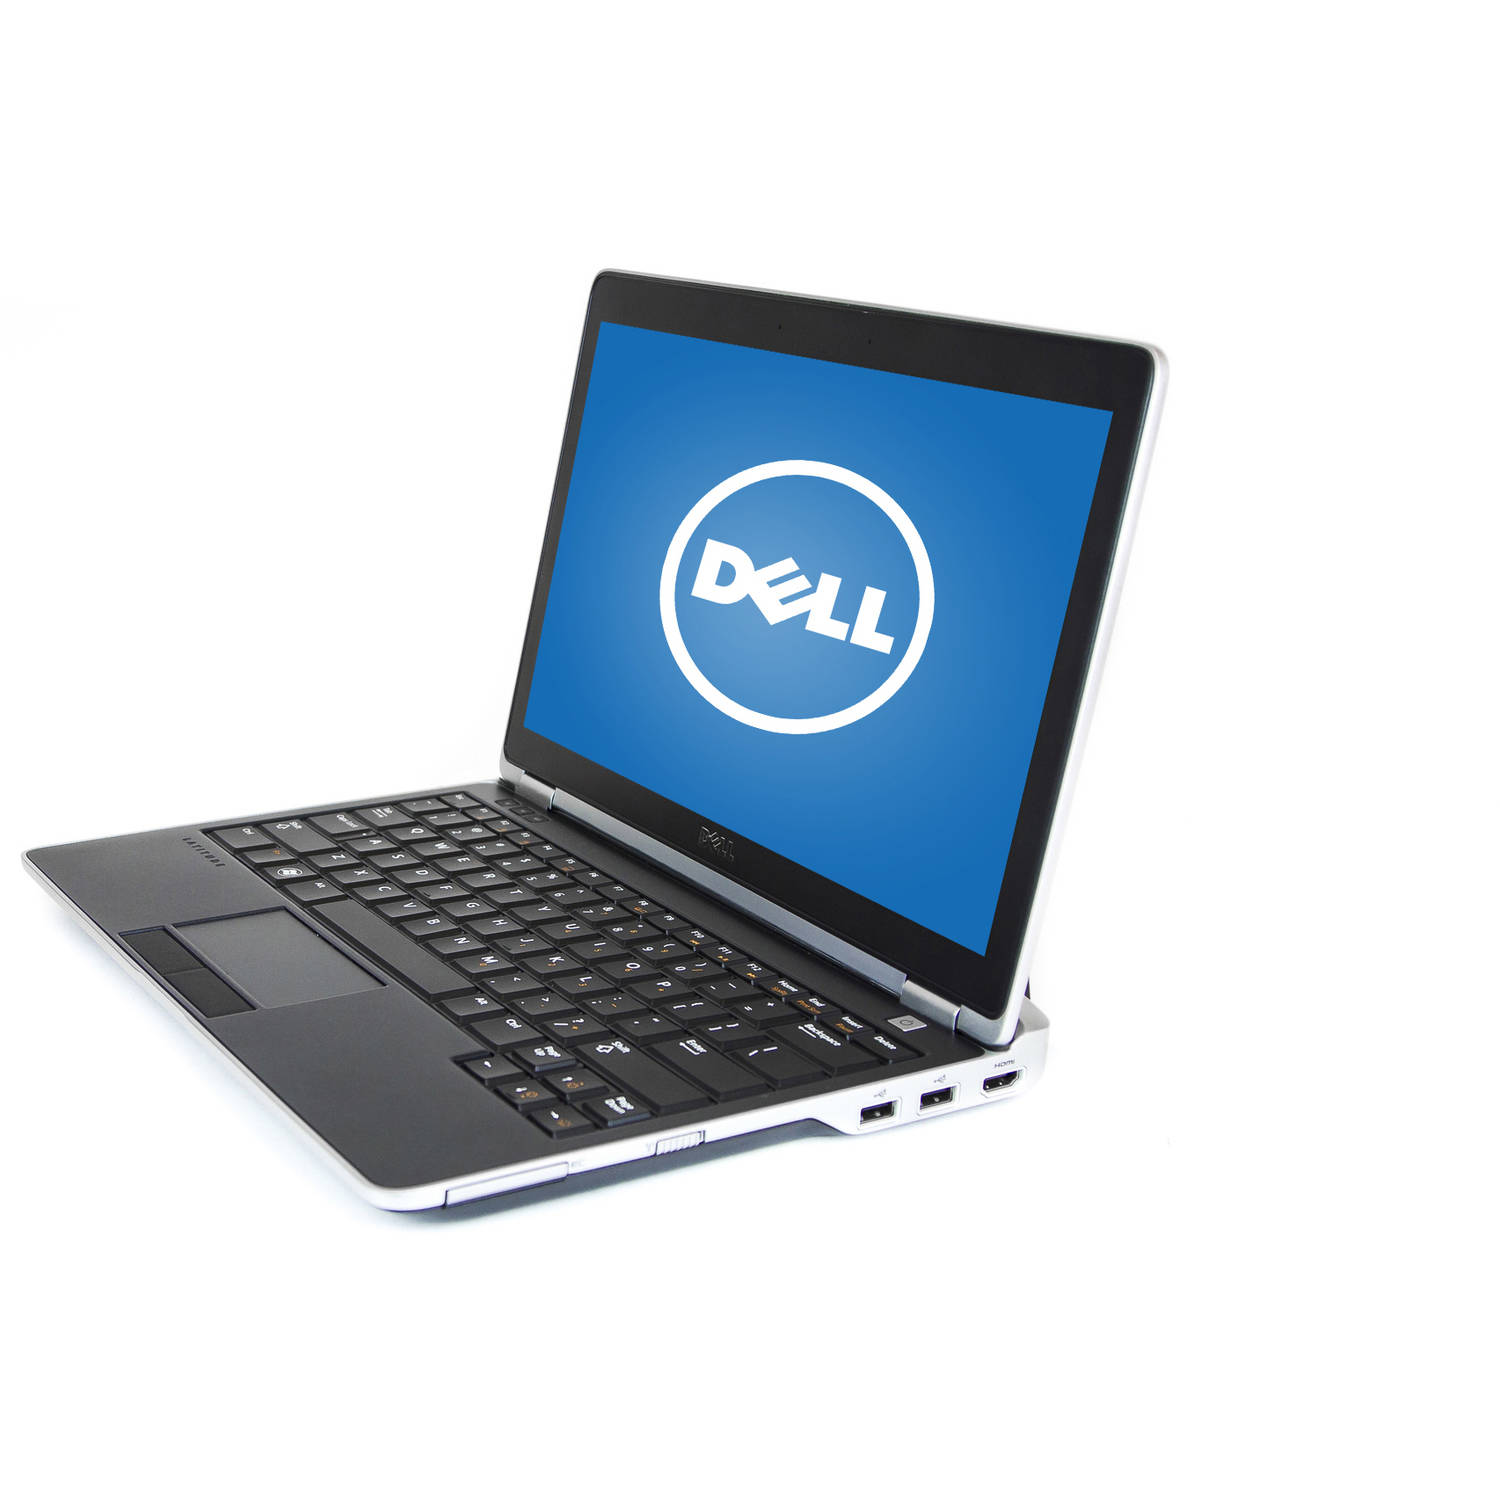 "Refurbished Dell Silver 12.5"" E6220 Laptop PC with Intel Core i5 Processor, 4GB Memory, 320GB Hard Drive and Windows 7 Professional"